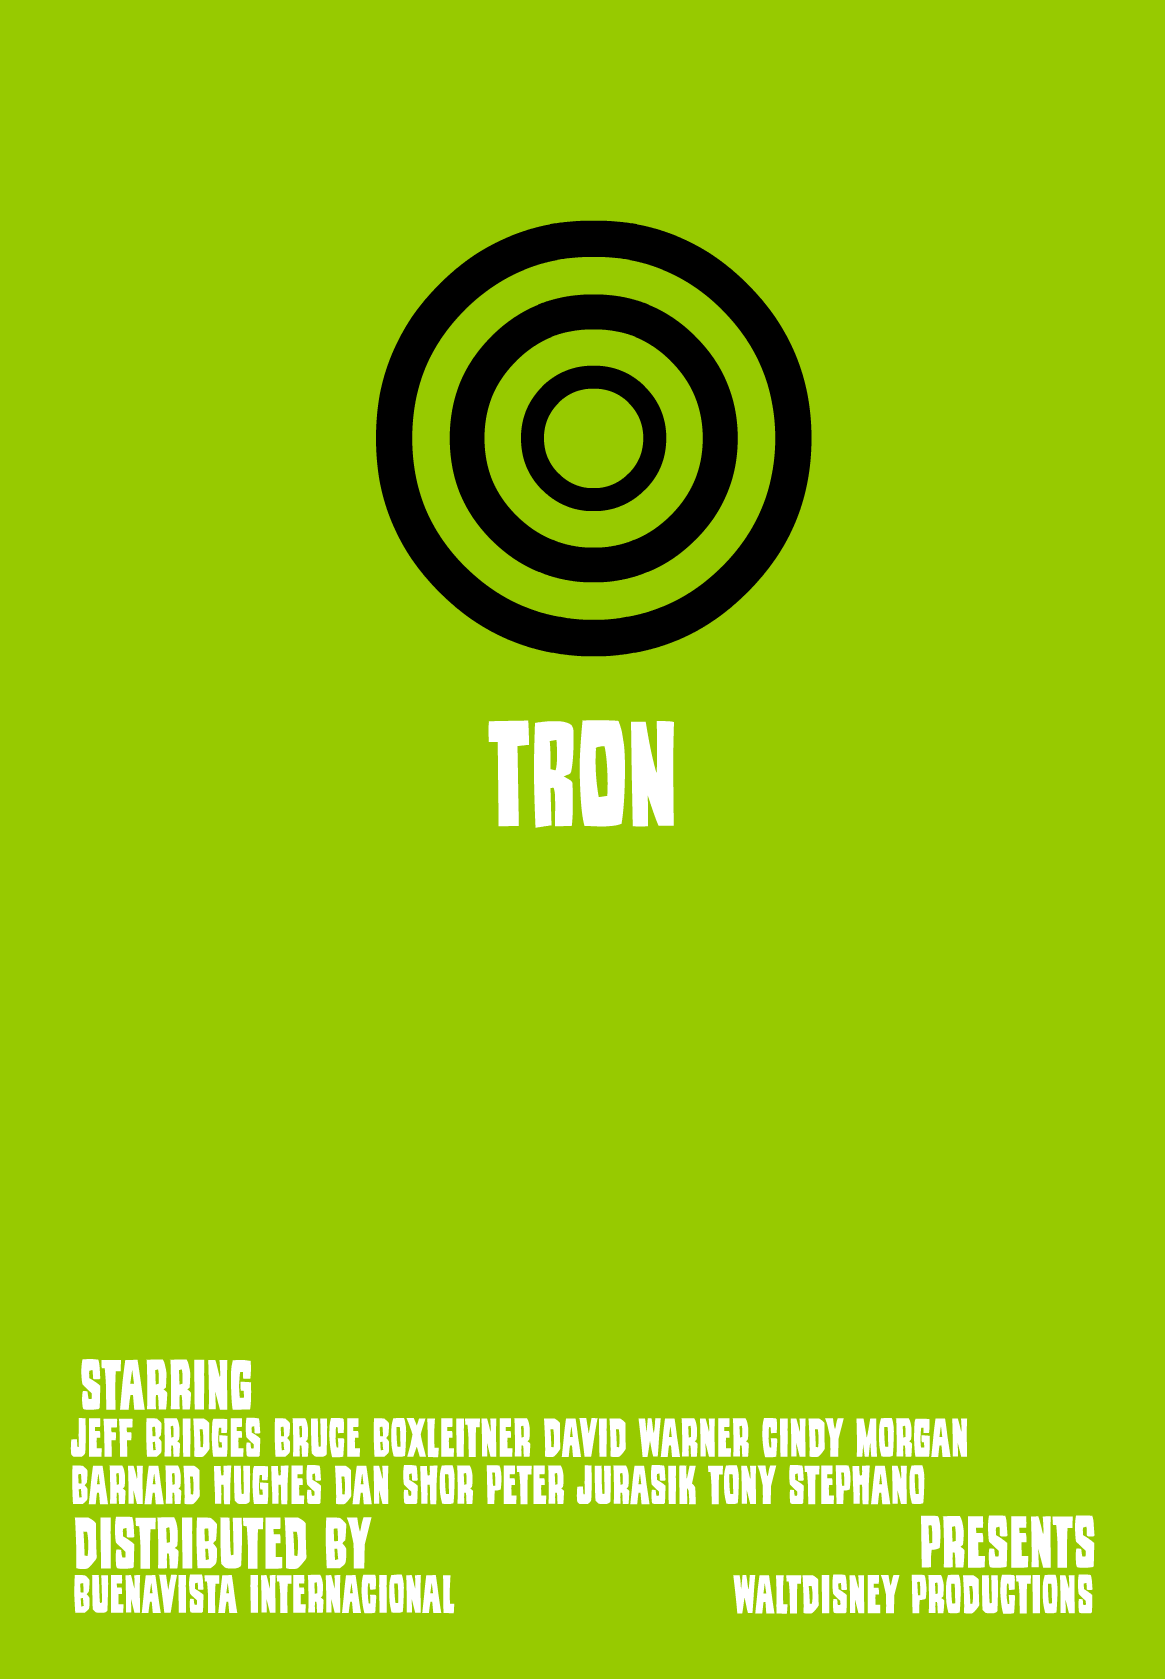 tron_posters_20210005